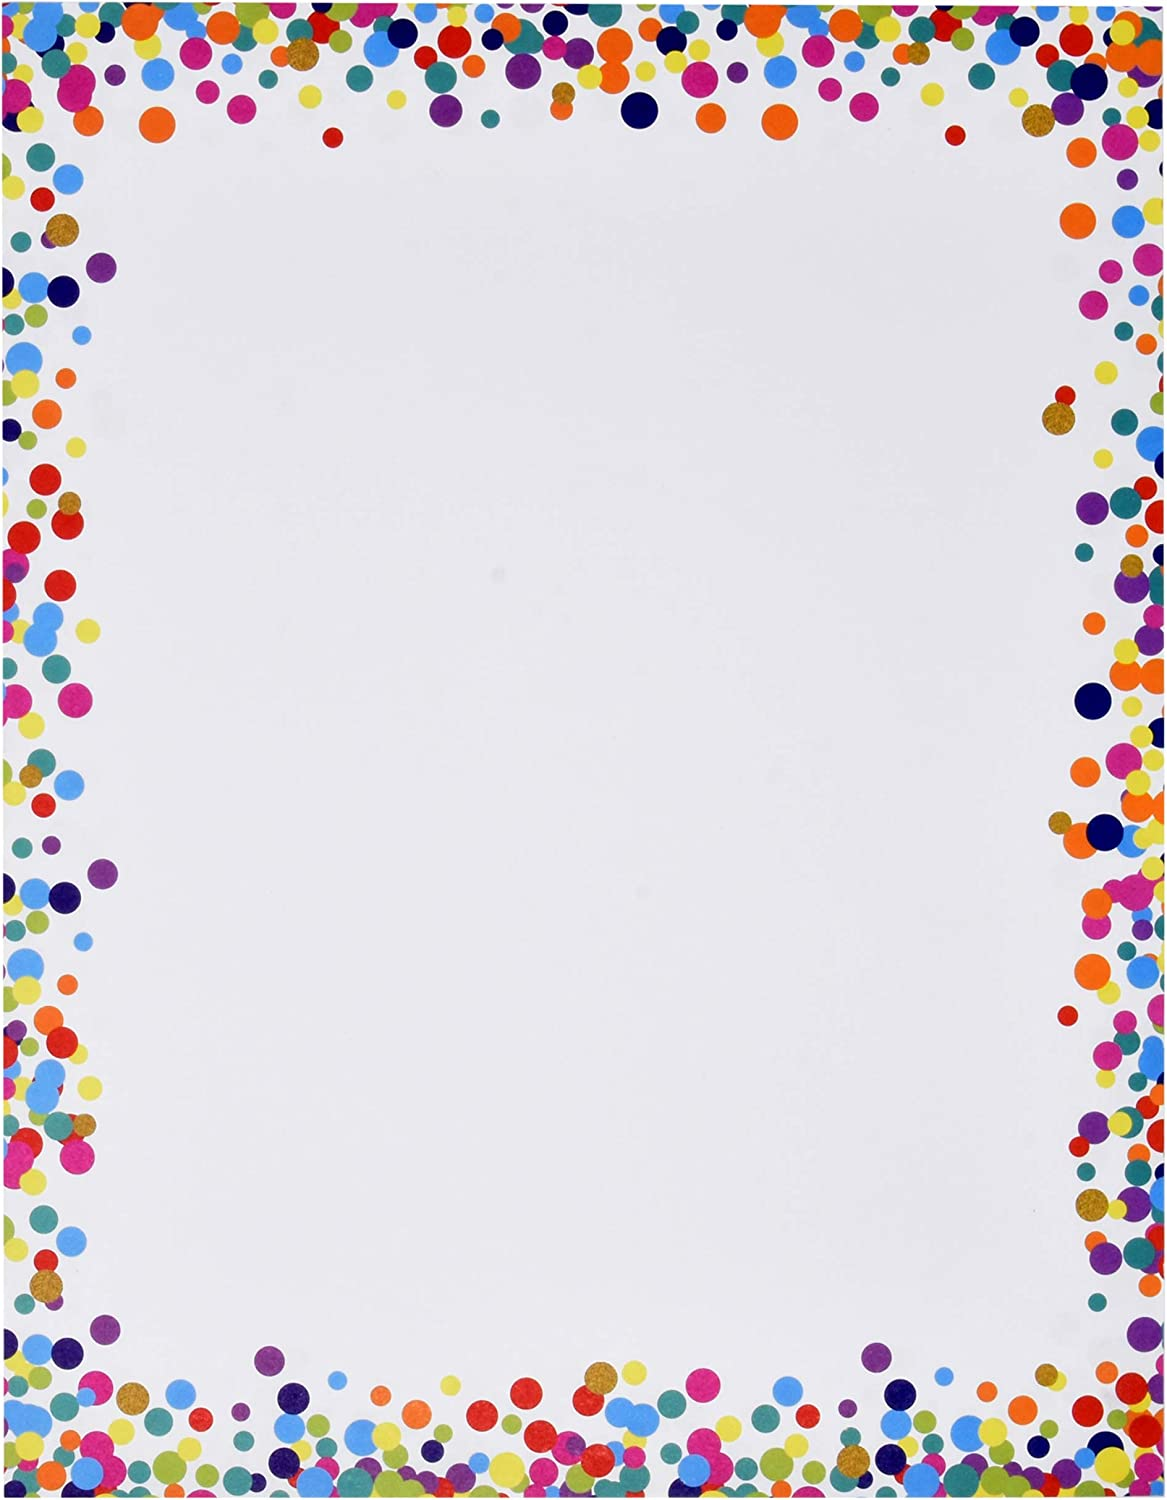 """Confetti Computer Paper Letterhead 100 Pack Colorful Border Dot Design Stationery Sheets Double Sided 8.5"""" x 11"""" For Writing Calligraphy Letters Invitations Scrapbook Crafts Printing & Office Supplies : Office Products"""